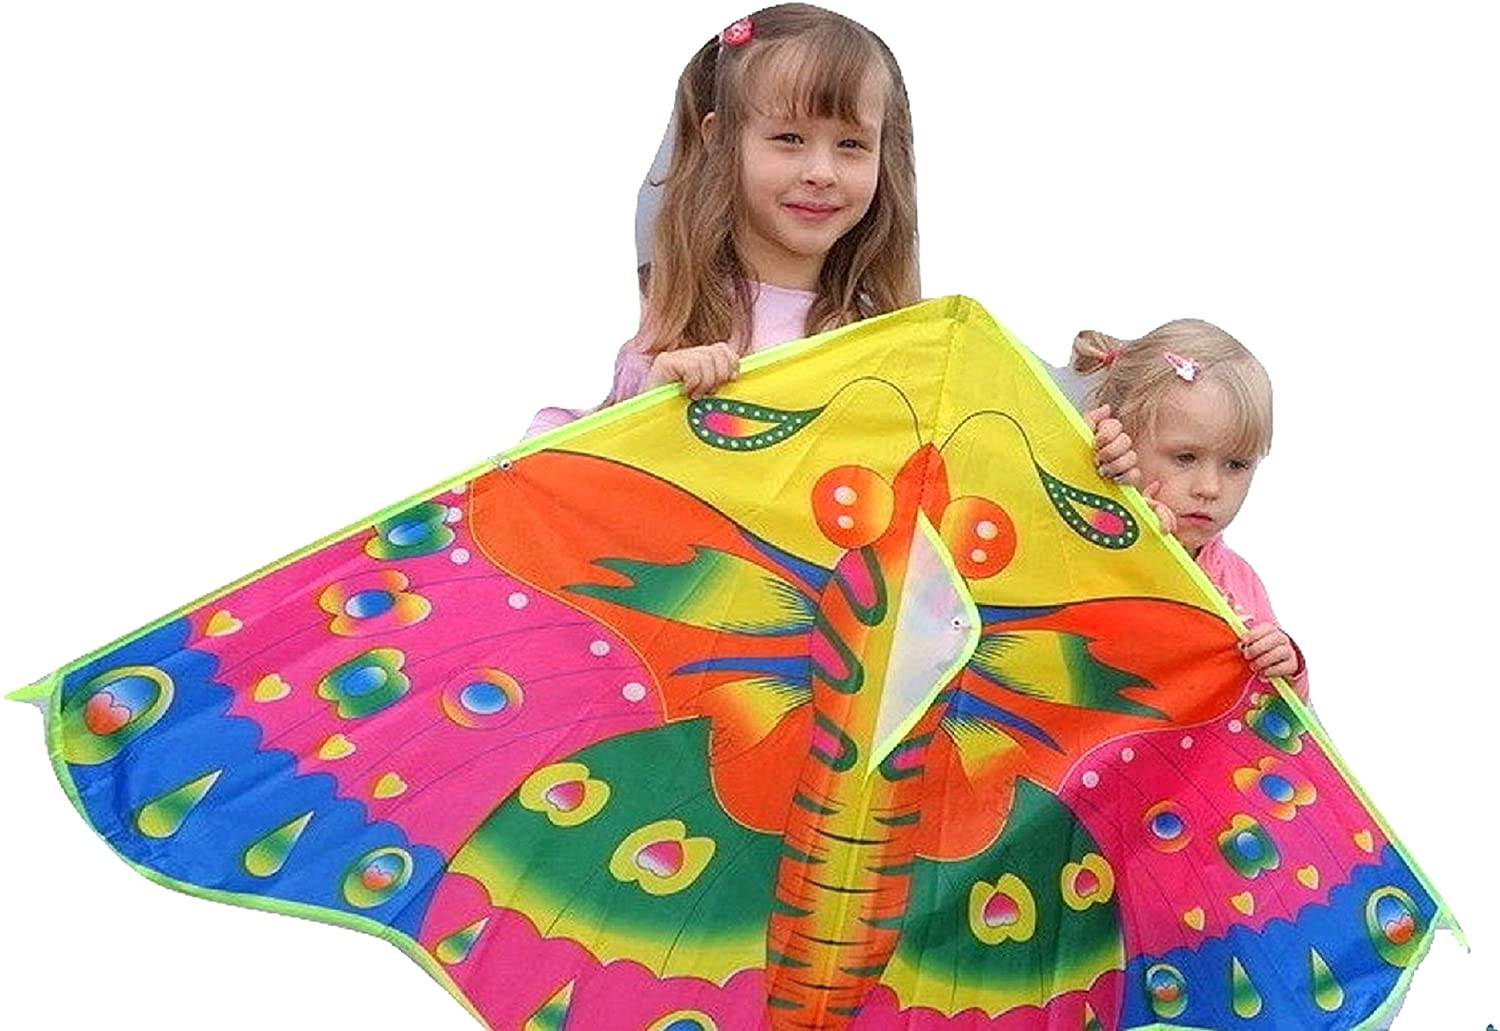 SoGreat Huge Colorful Butterfly Kite for Kids, Long, Flowing Tails, Beautiful Colors and Durable Polyester Fabric, Includes Plastic Handle and 30 Meters of String